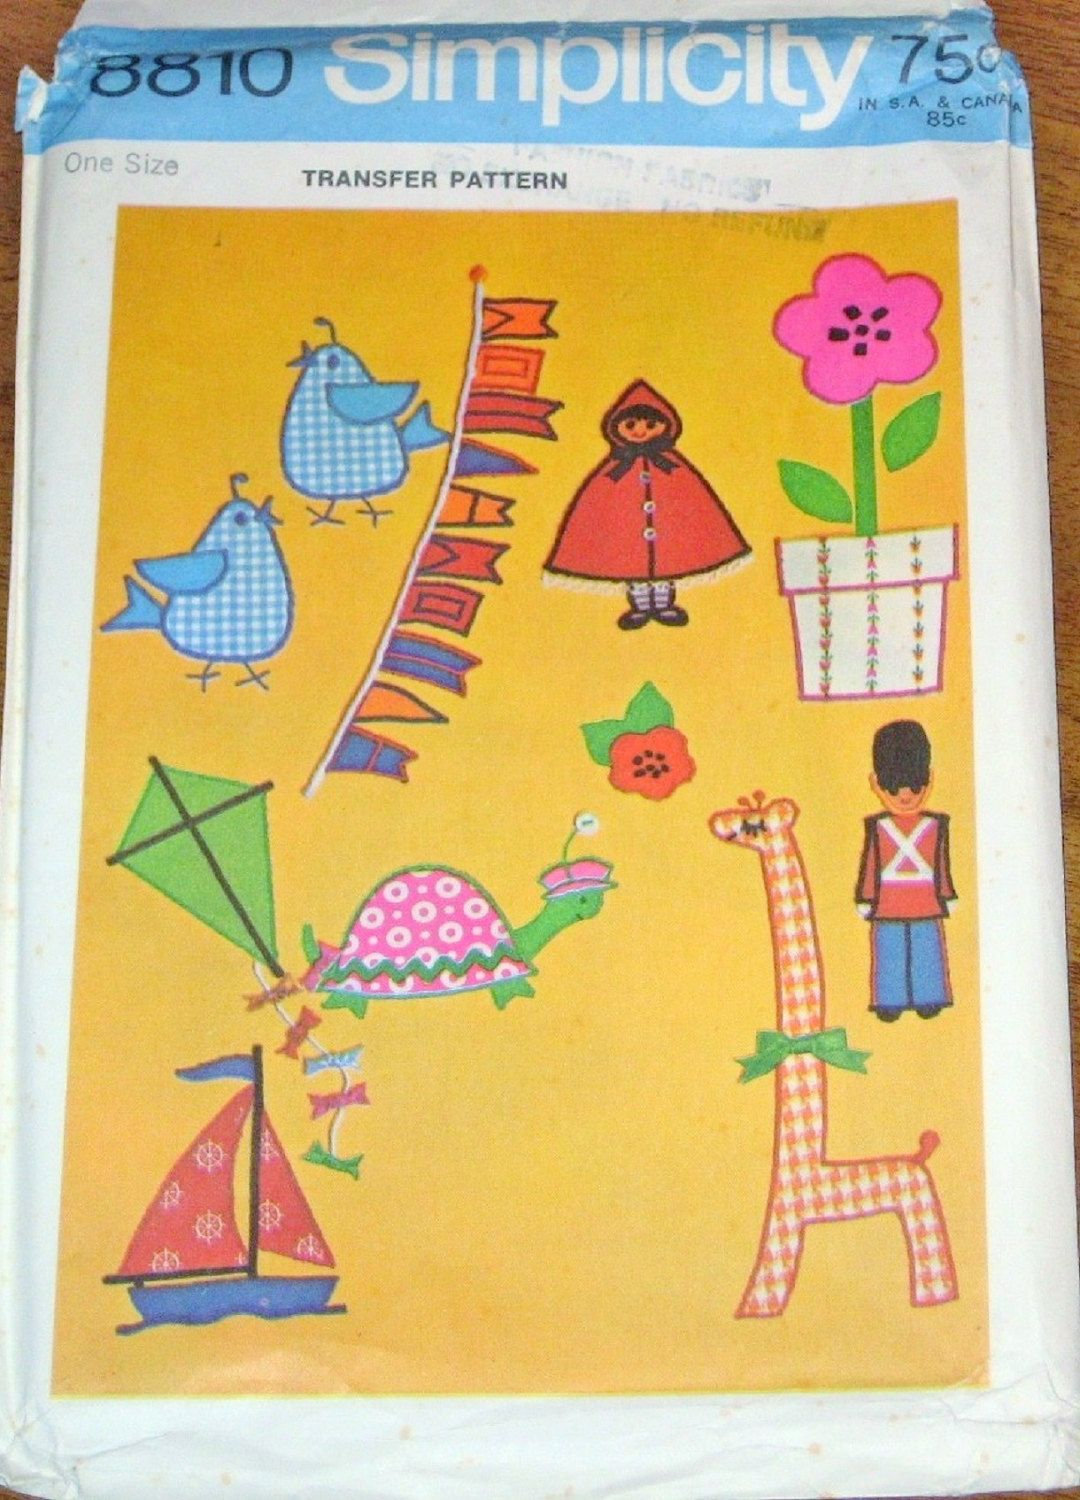 Simplicity hot iron motifs storybook characters flower kite